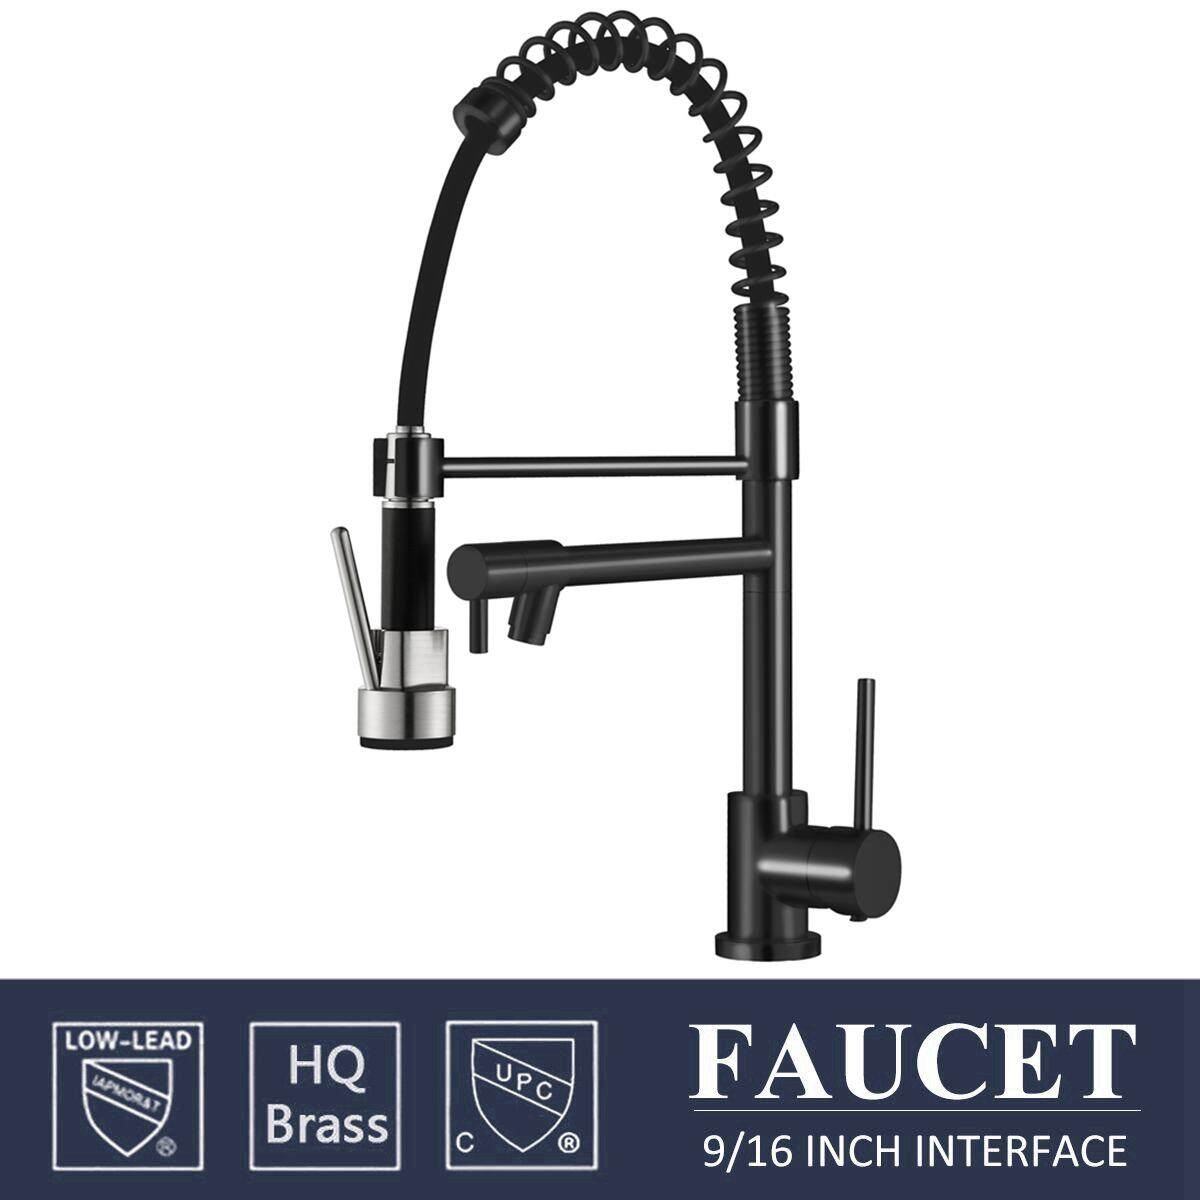 Holmark Chrome+Black Brass Kitchen Faucet Pull Down Spray Swivel Sink Mixer Tap 1/2 UK Plug Black